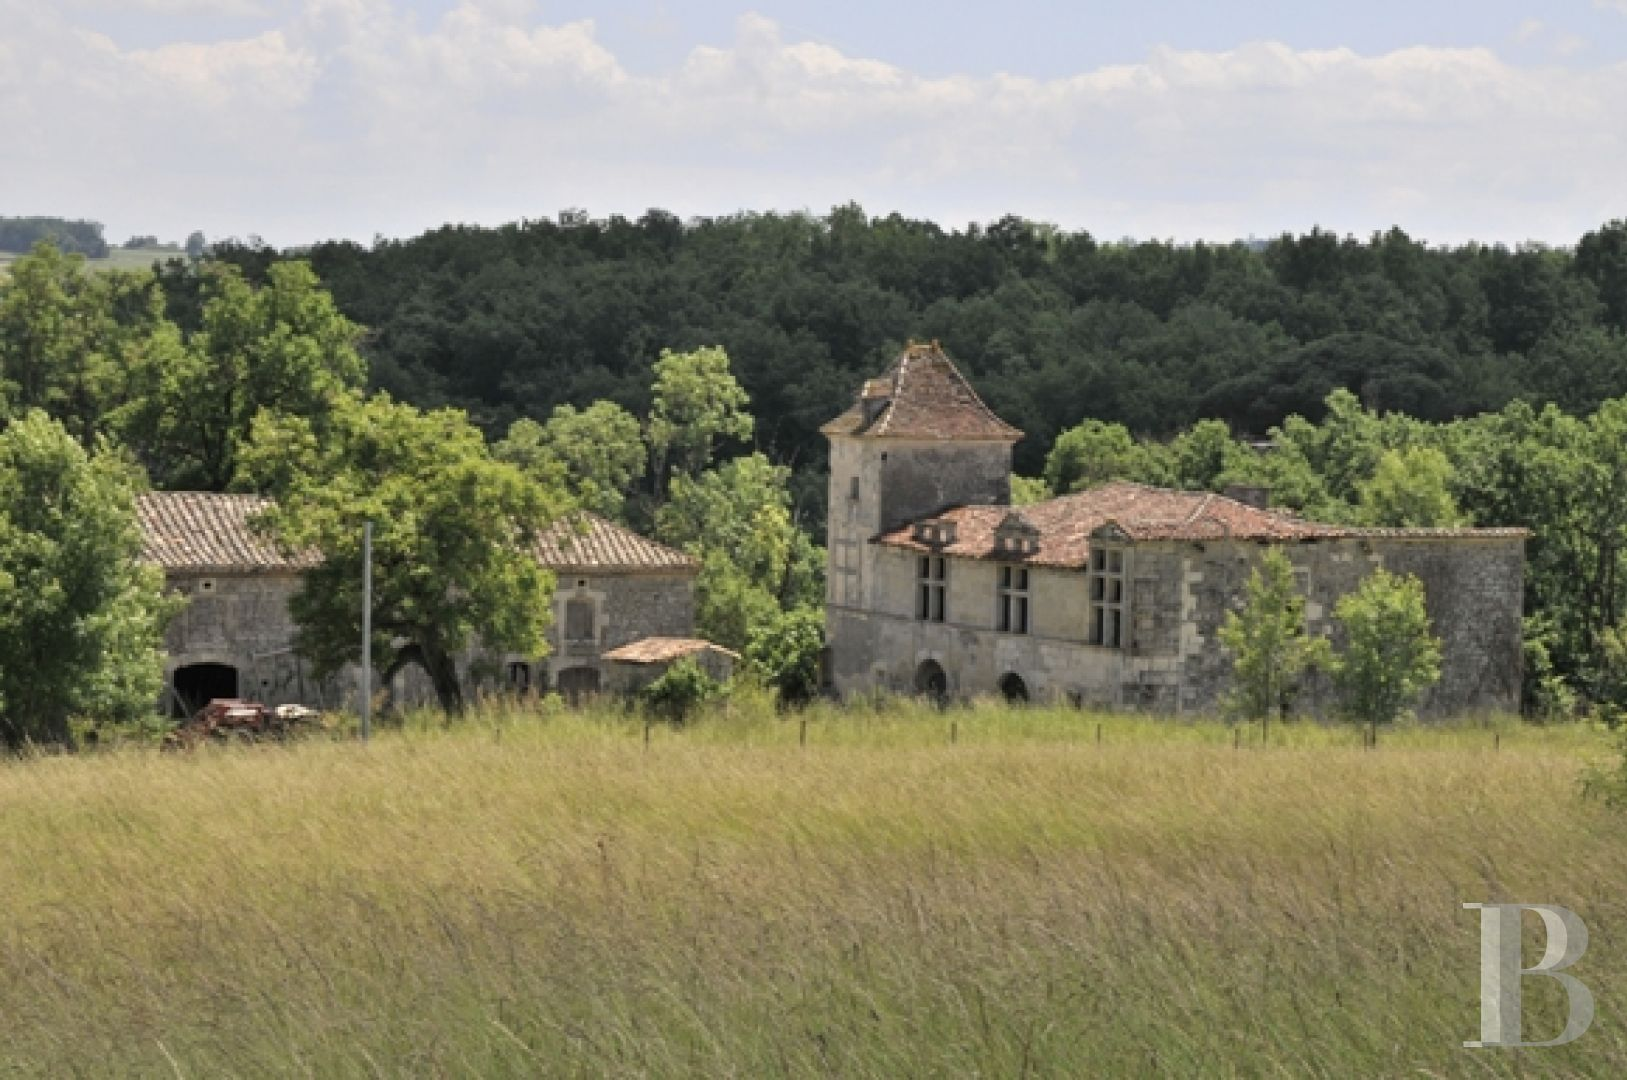 property for sale France aquitaine stronghold house - 1 zoom